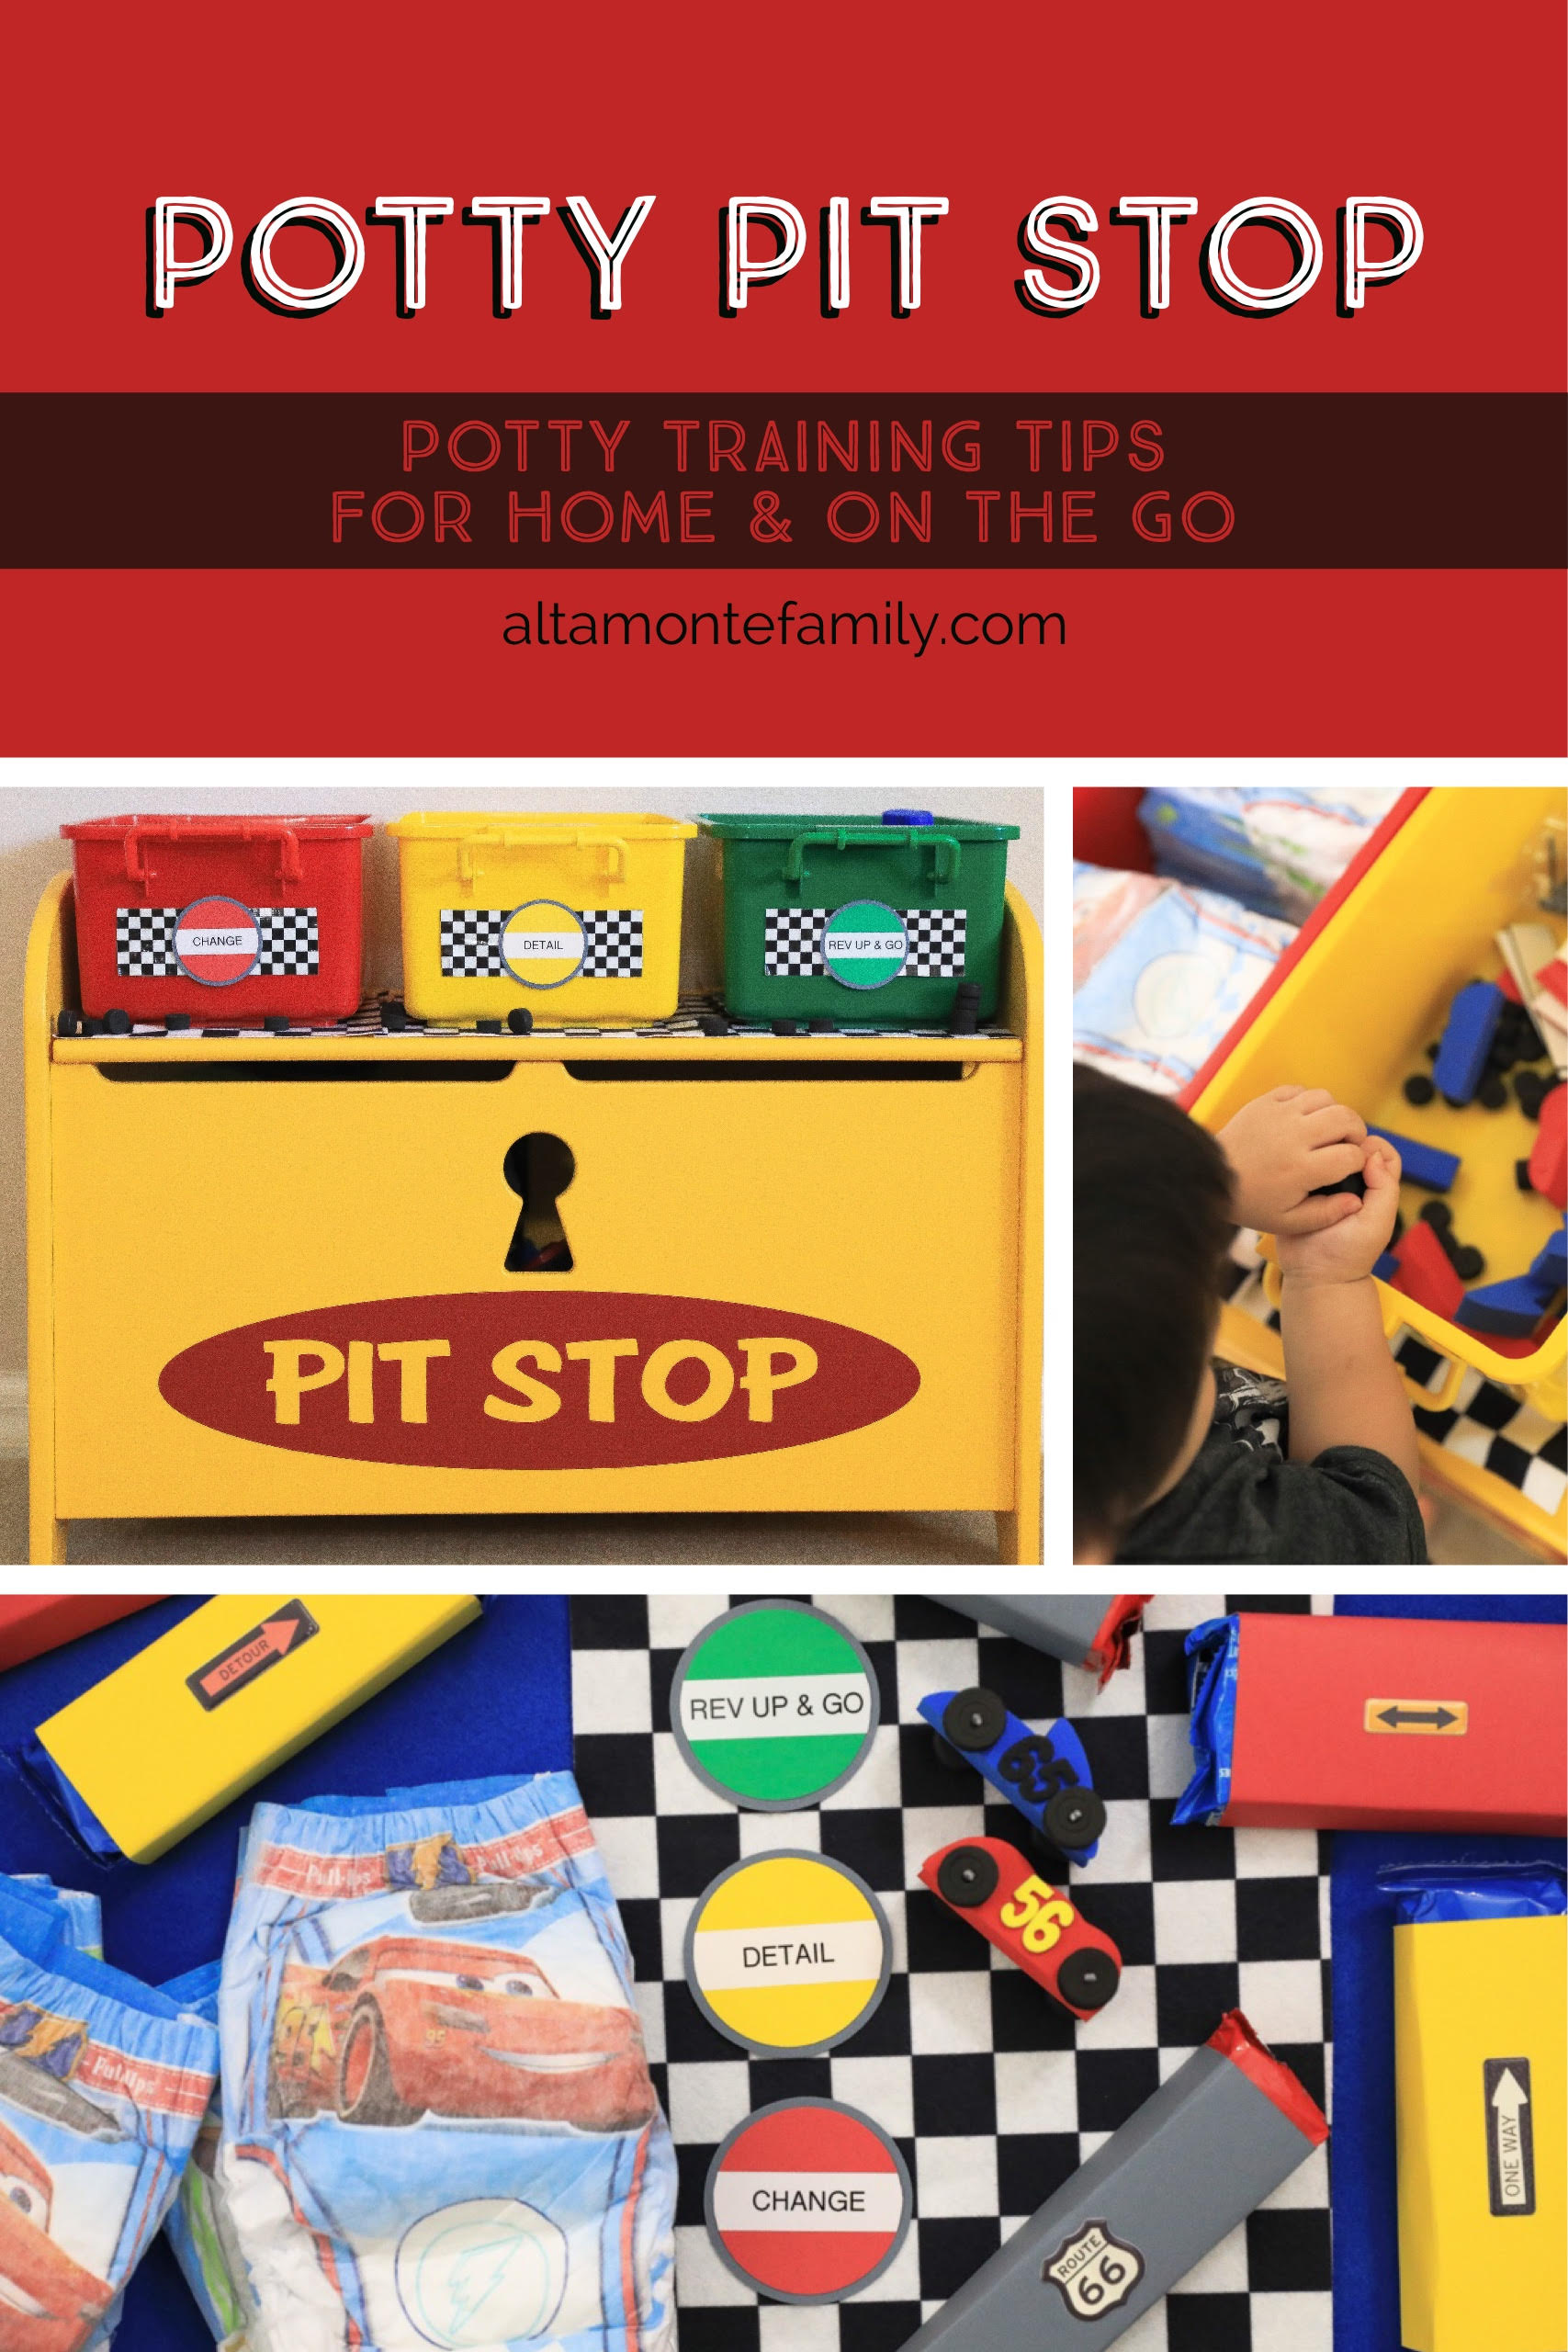 Potty Training Station Tips Ideas For Toddler Boys Race Car Pit Stop Toy Chest